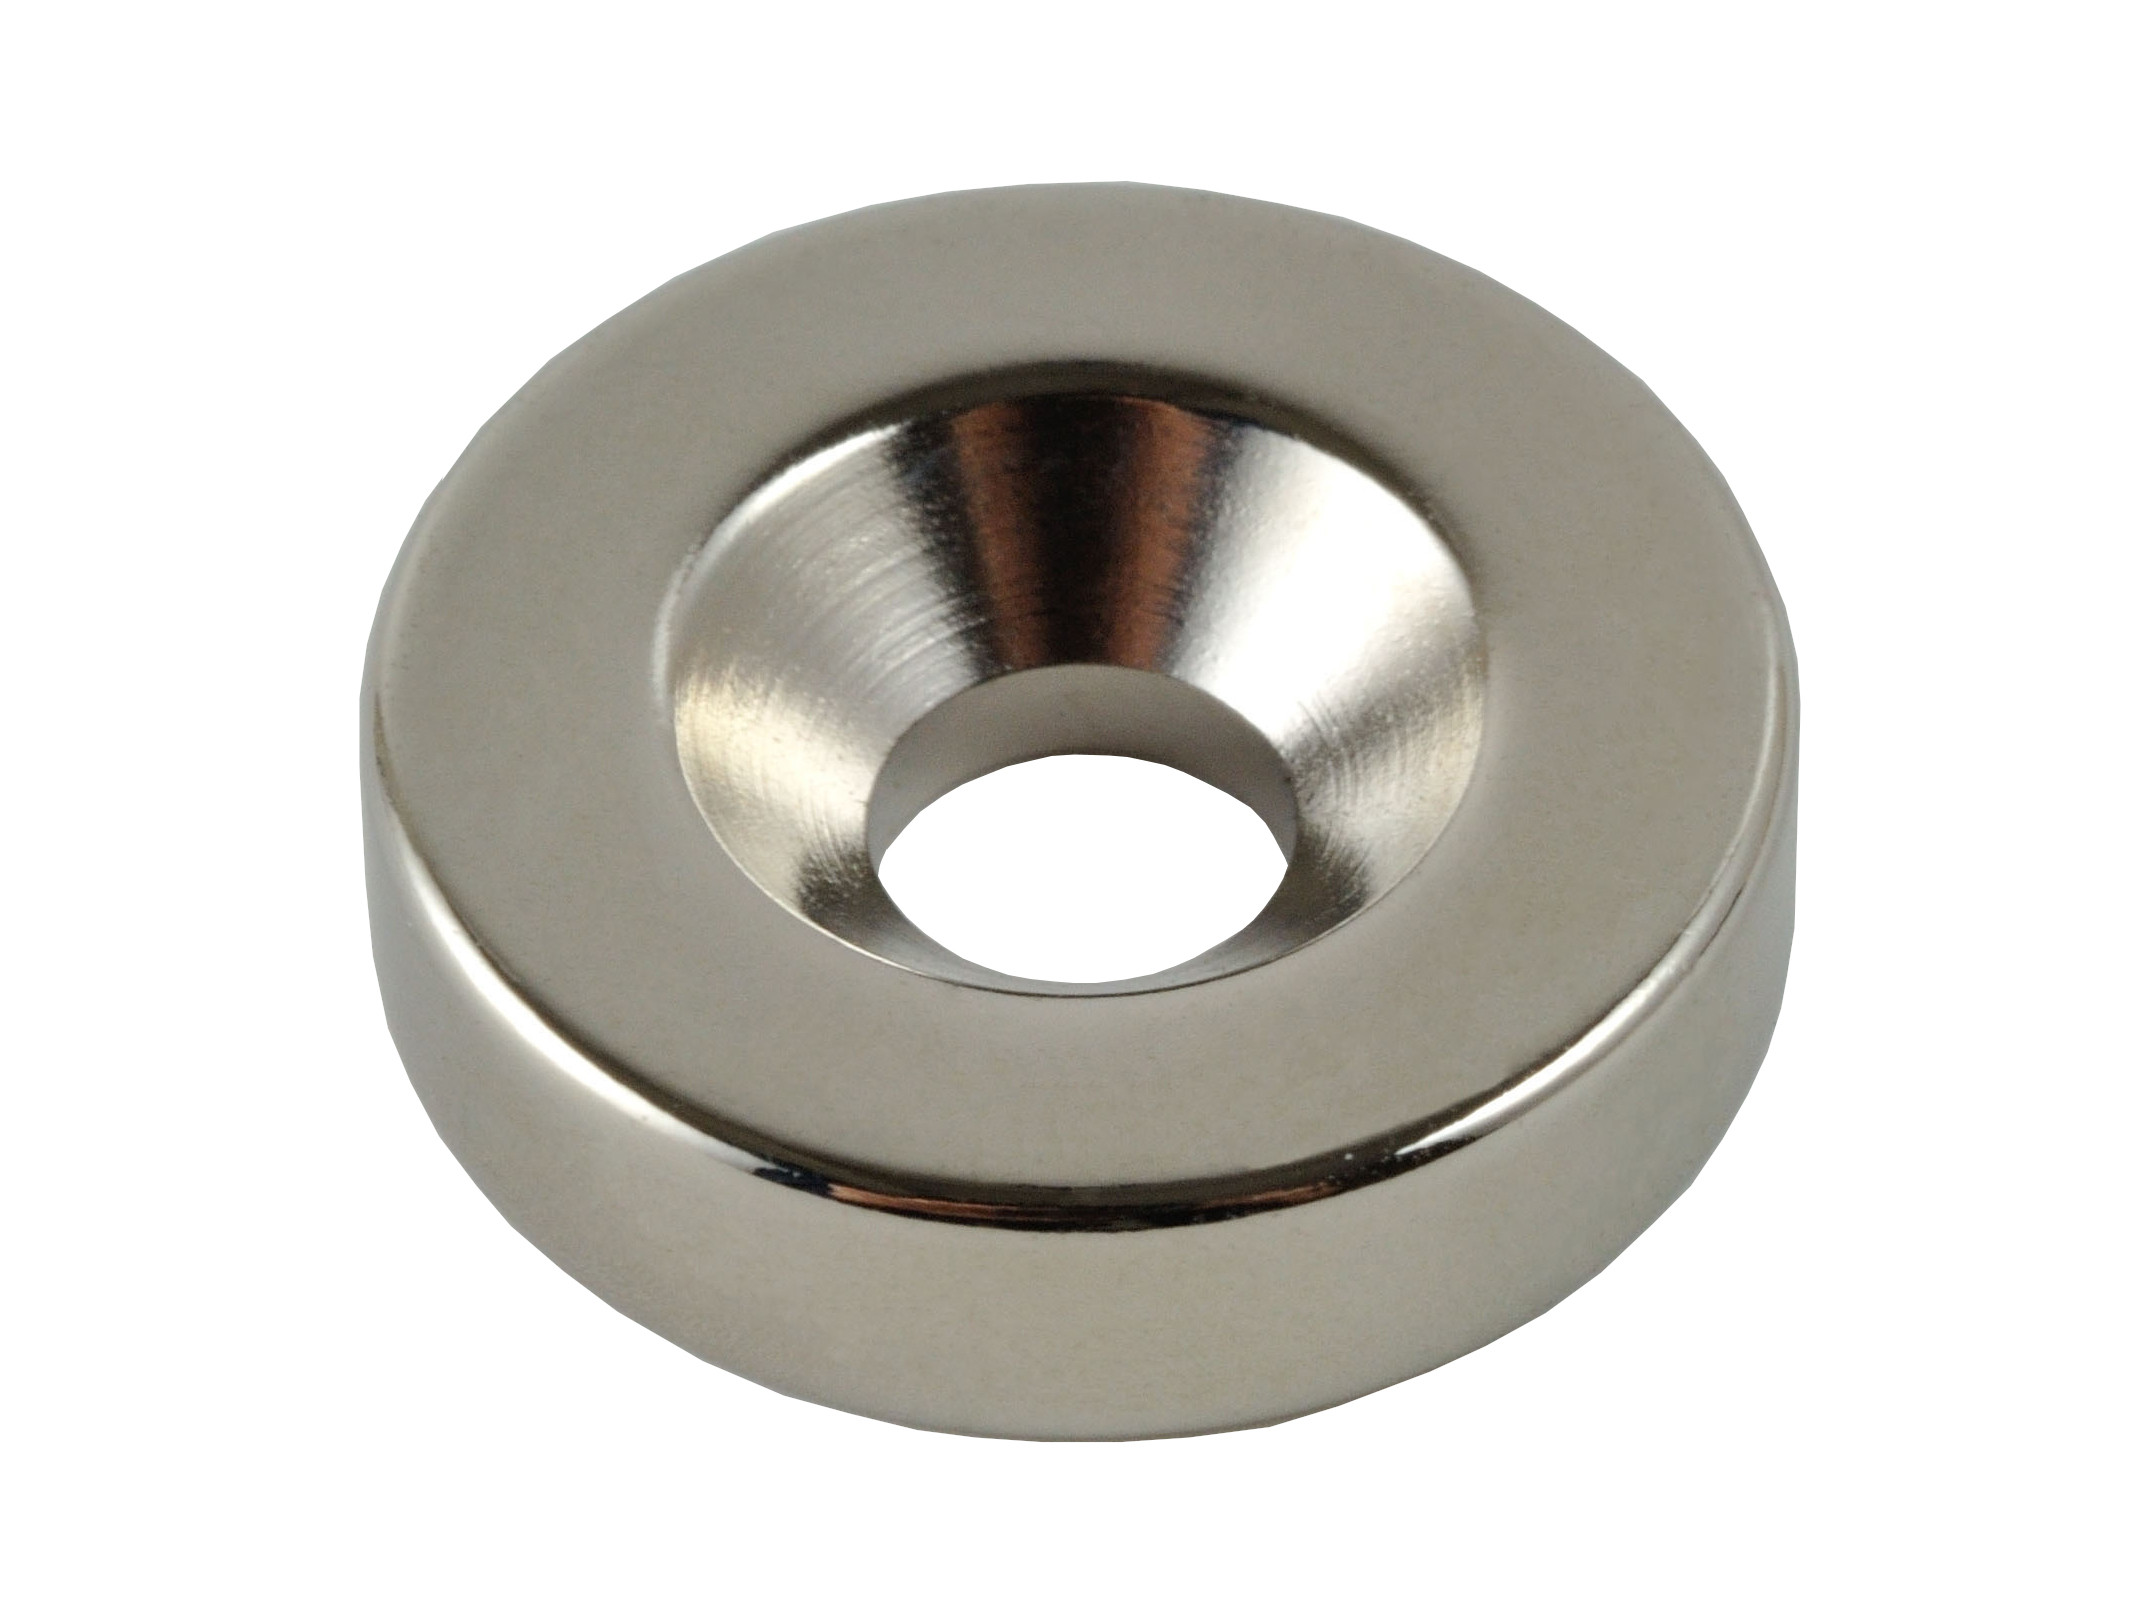 Cylindrical Neodymium Magnet With Countersunk Hole